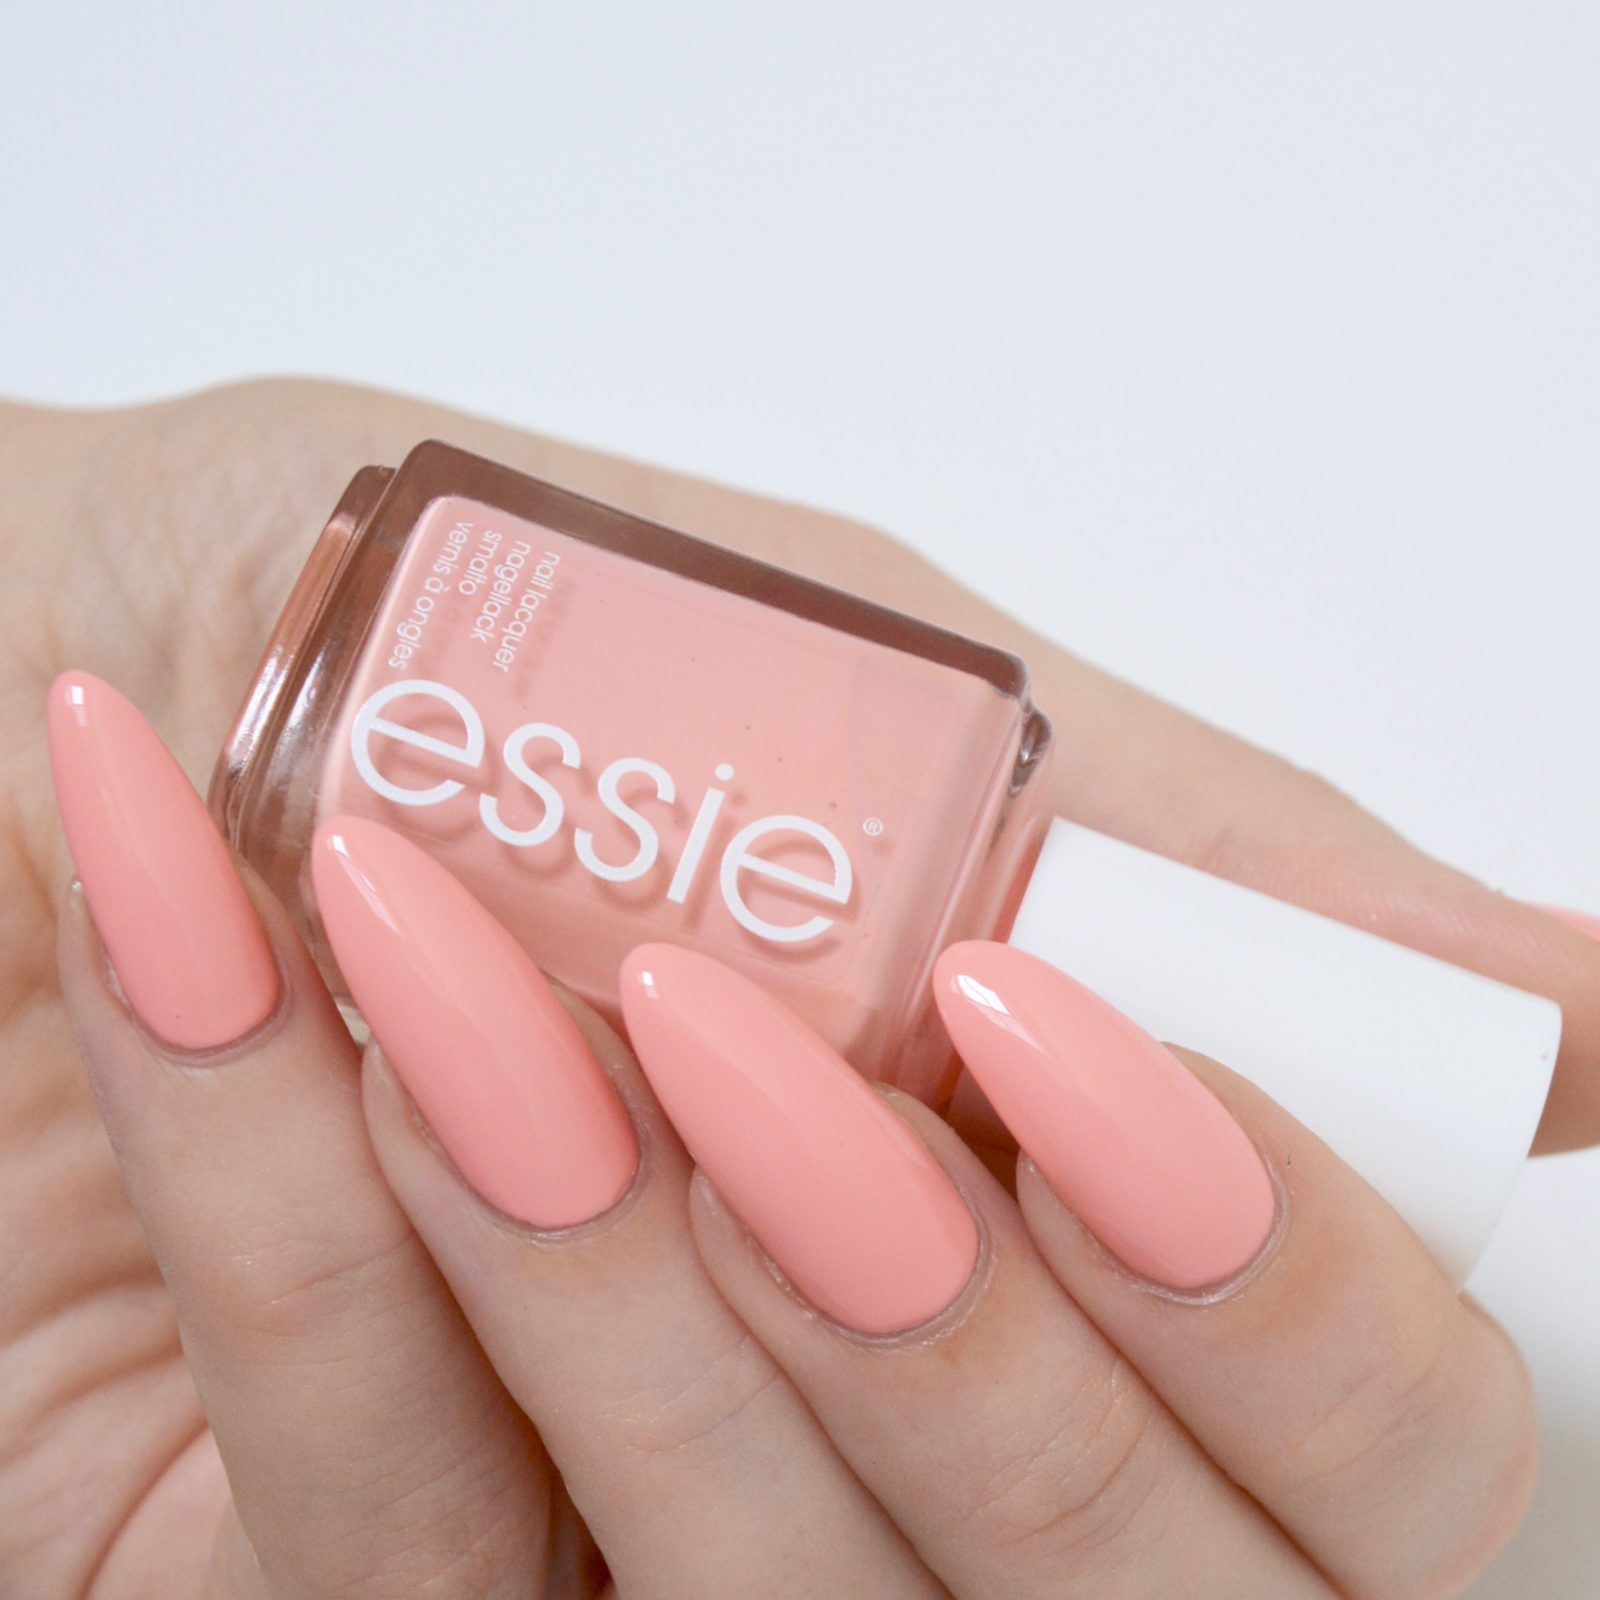 essie Spring 2017 \'Excuse Me Sur\' - a beautiful peachy pink creme ...